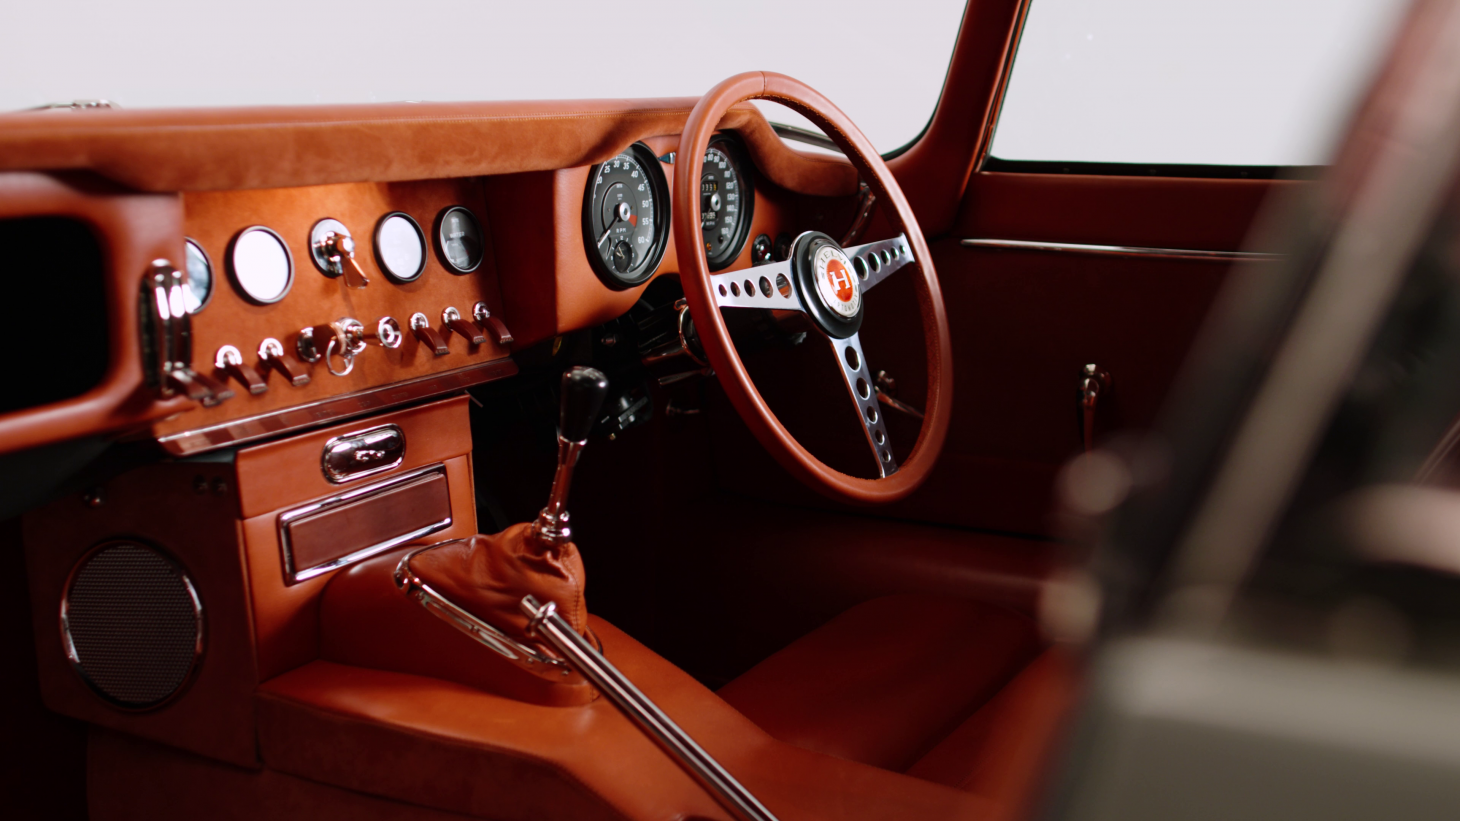 Dashboard of the Series 1 Jaguar E-Type by Helm and Bill Amberg